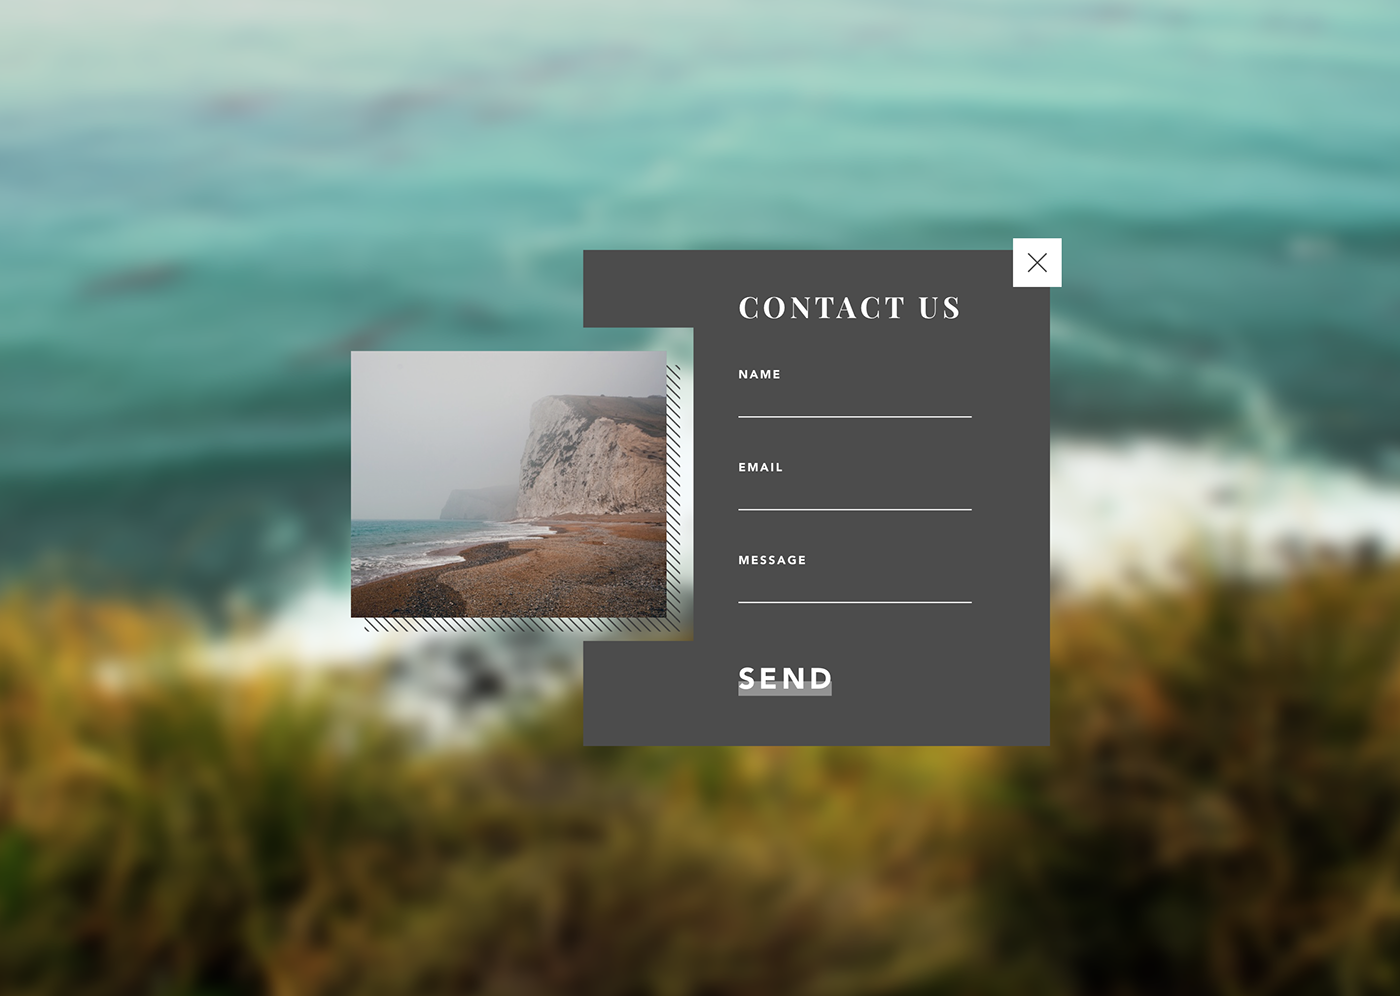 contact form UI ux Interface Form Contact page design Web daily ui challenge